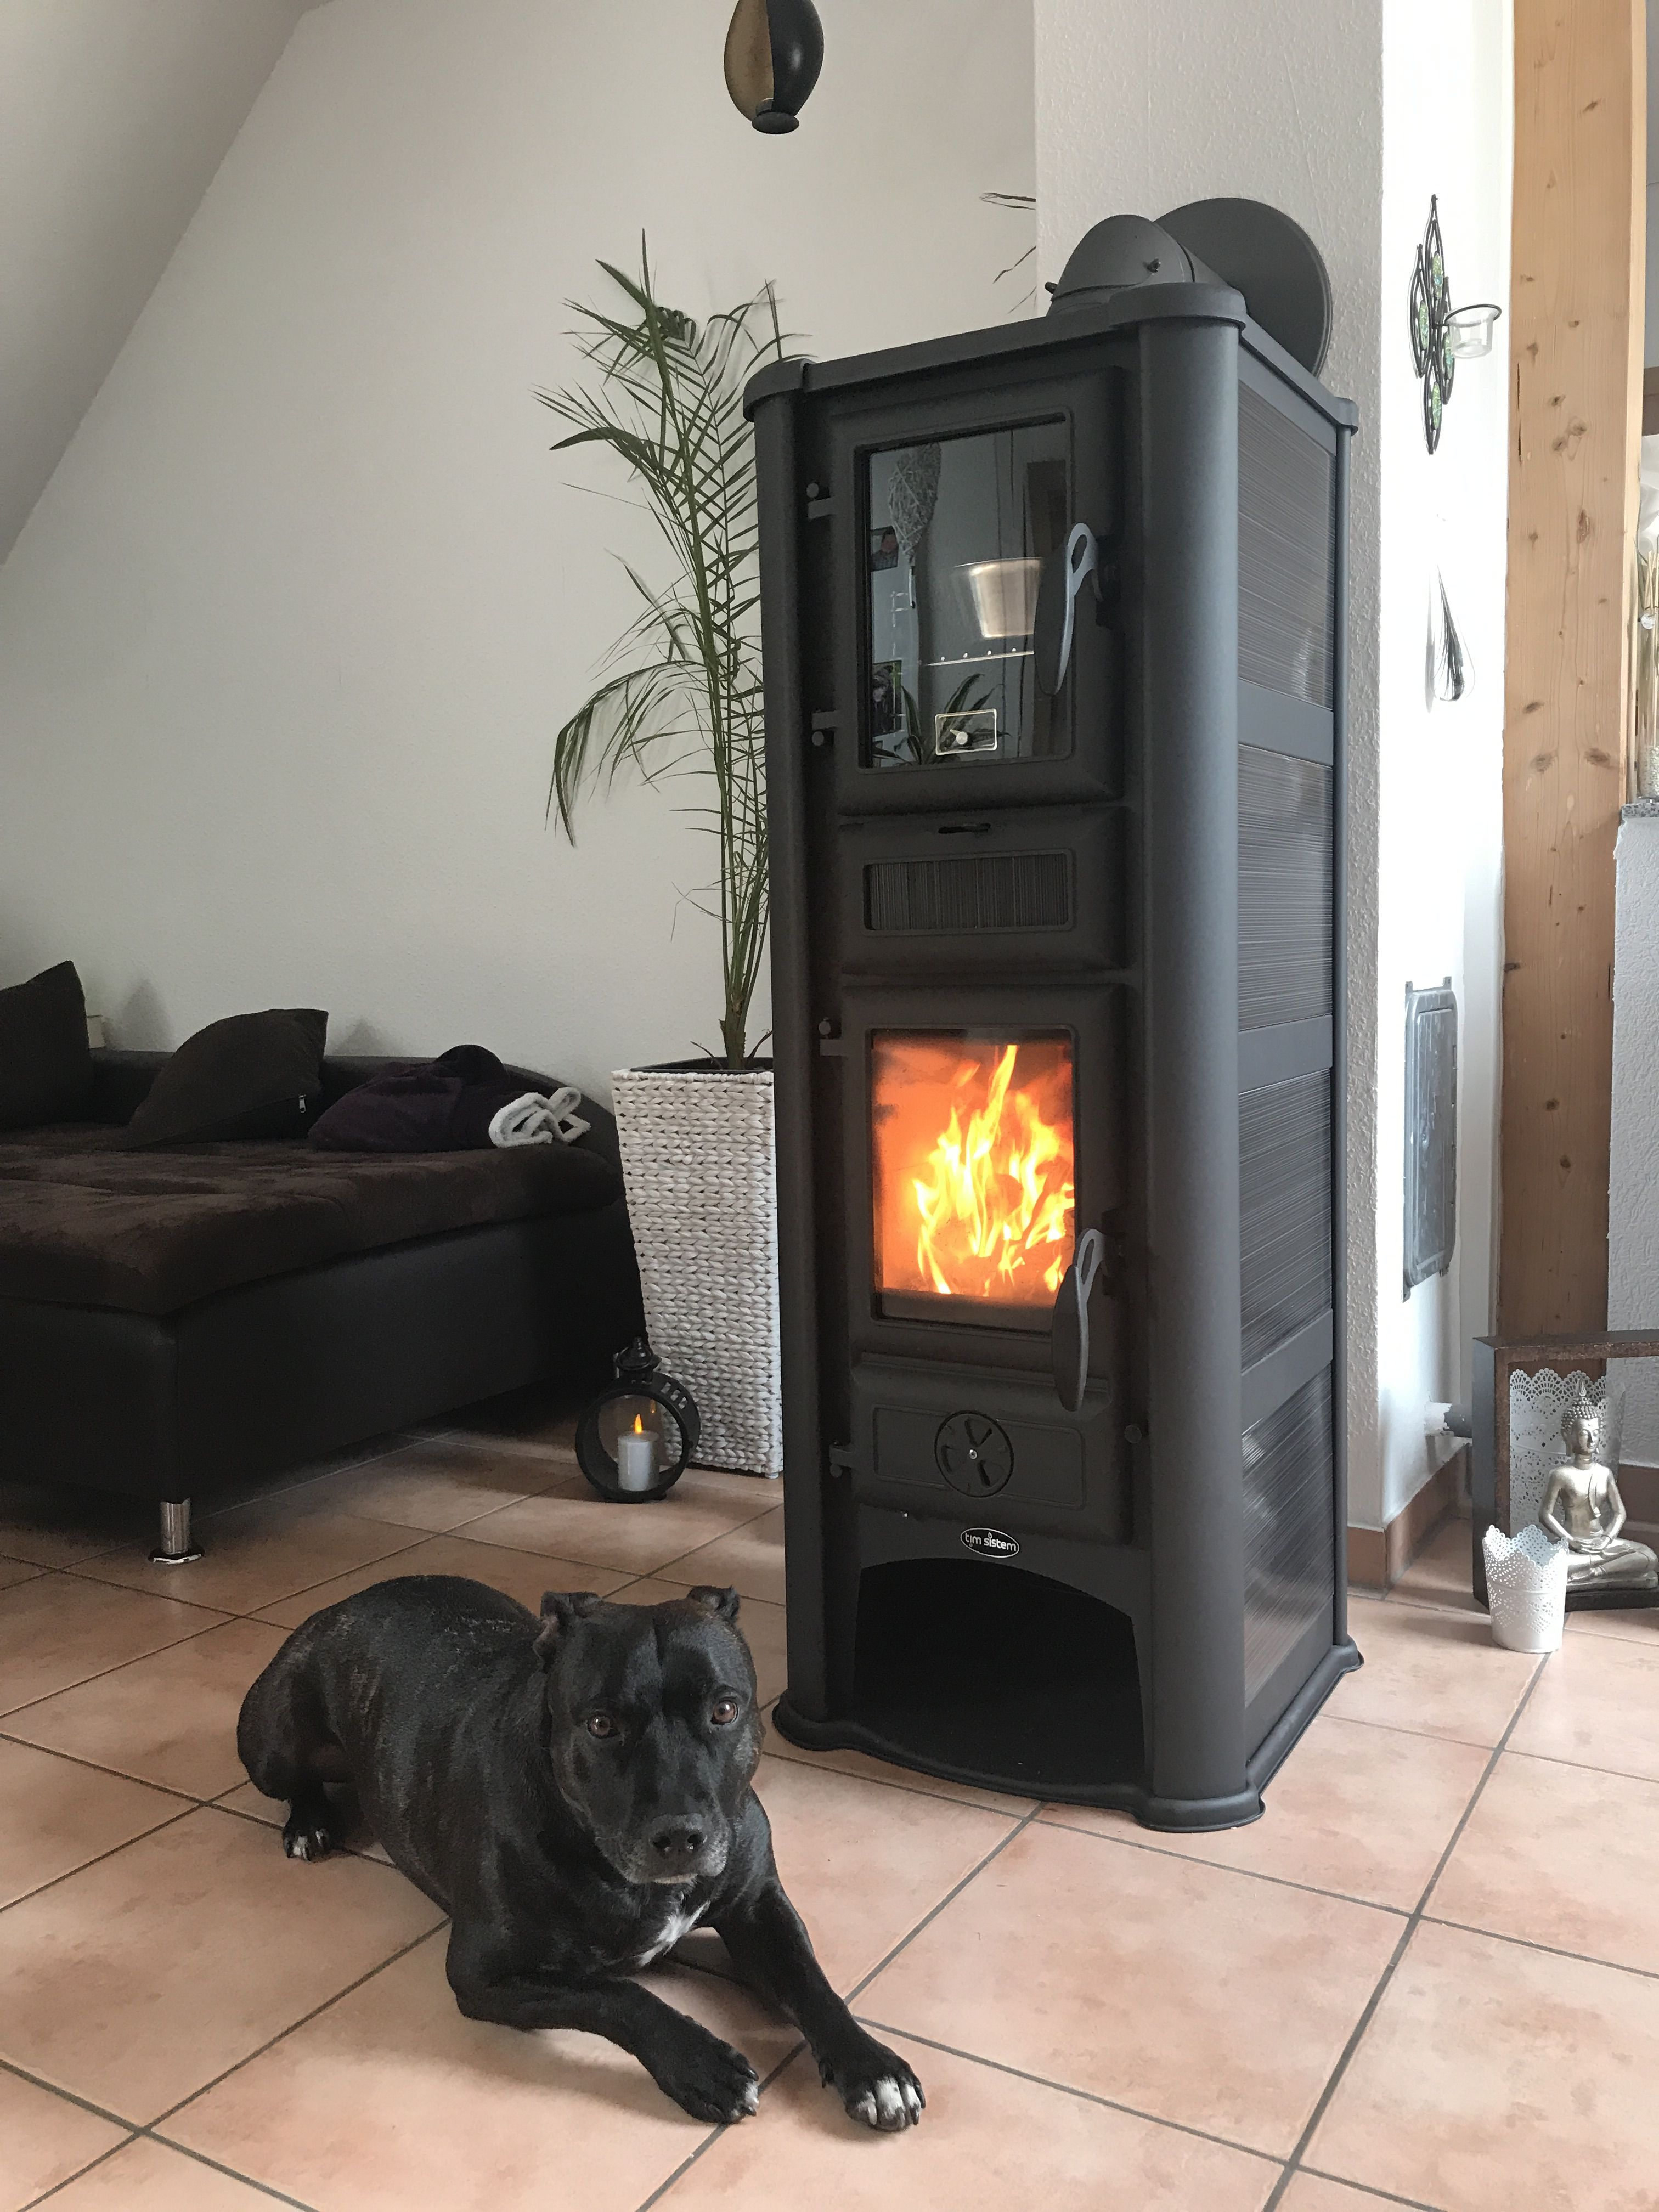 Color Fire Kaminofen Ofen Mit Backröhre Backfunktion Lederata Plus 9kw Seitenteile